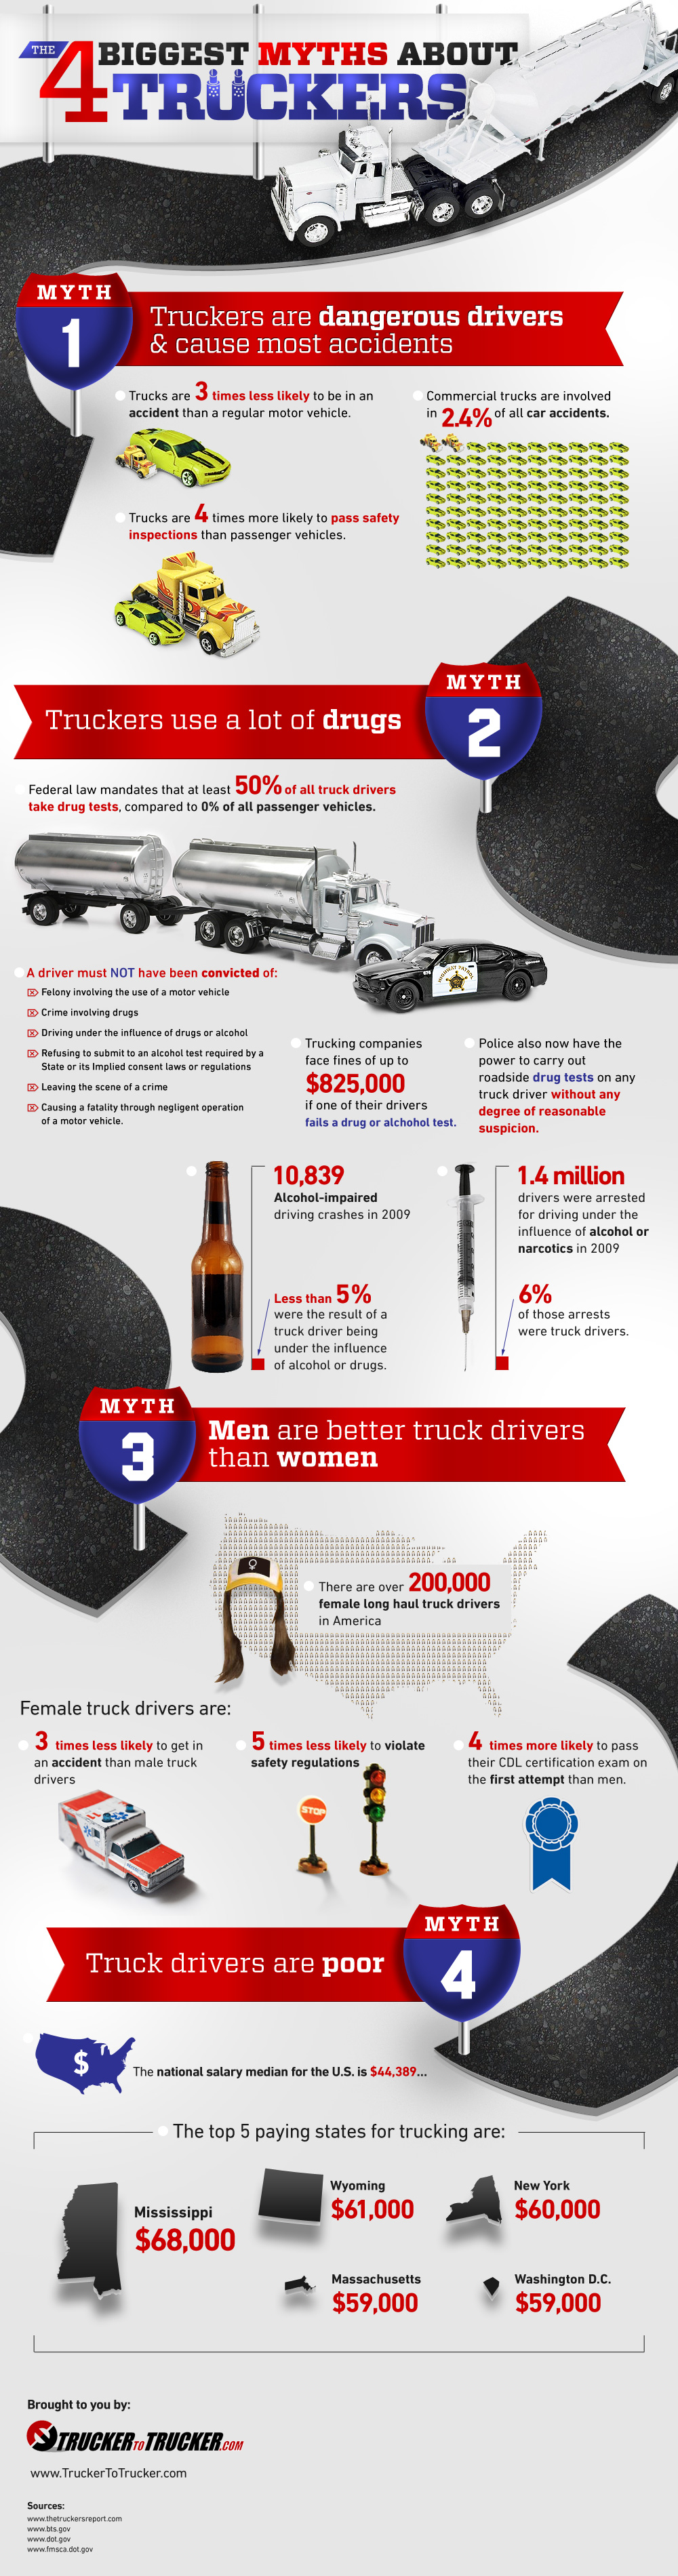 2 biggest myths about truckers